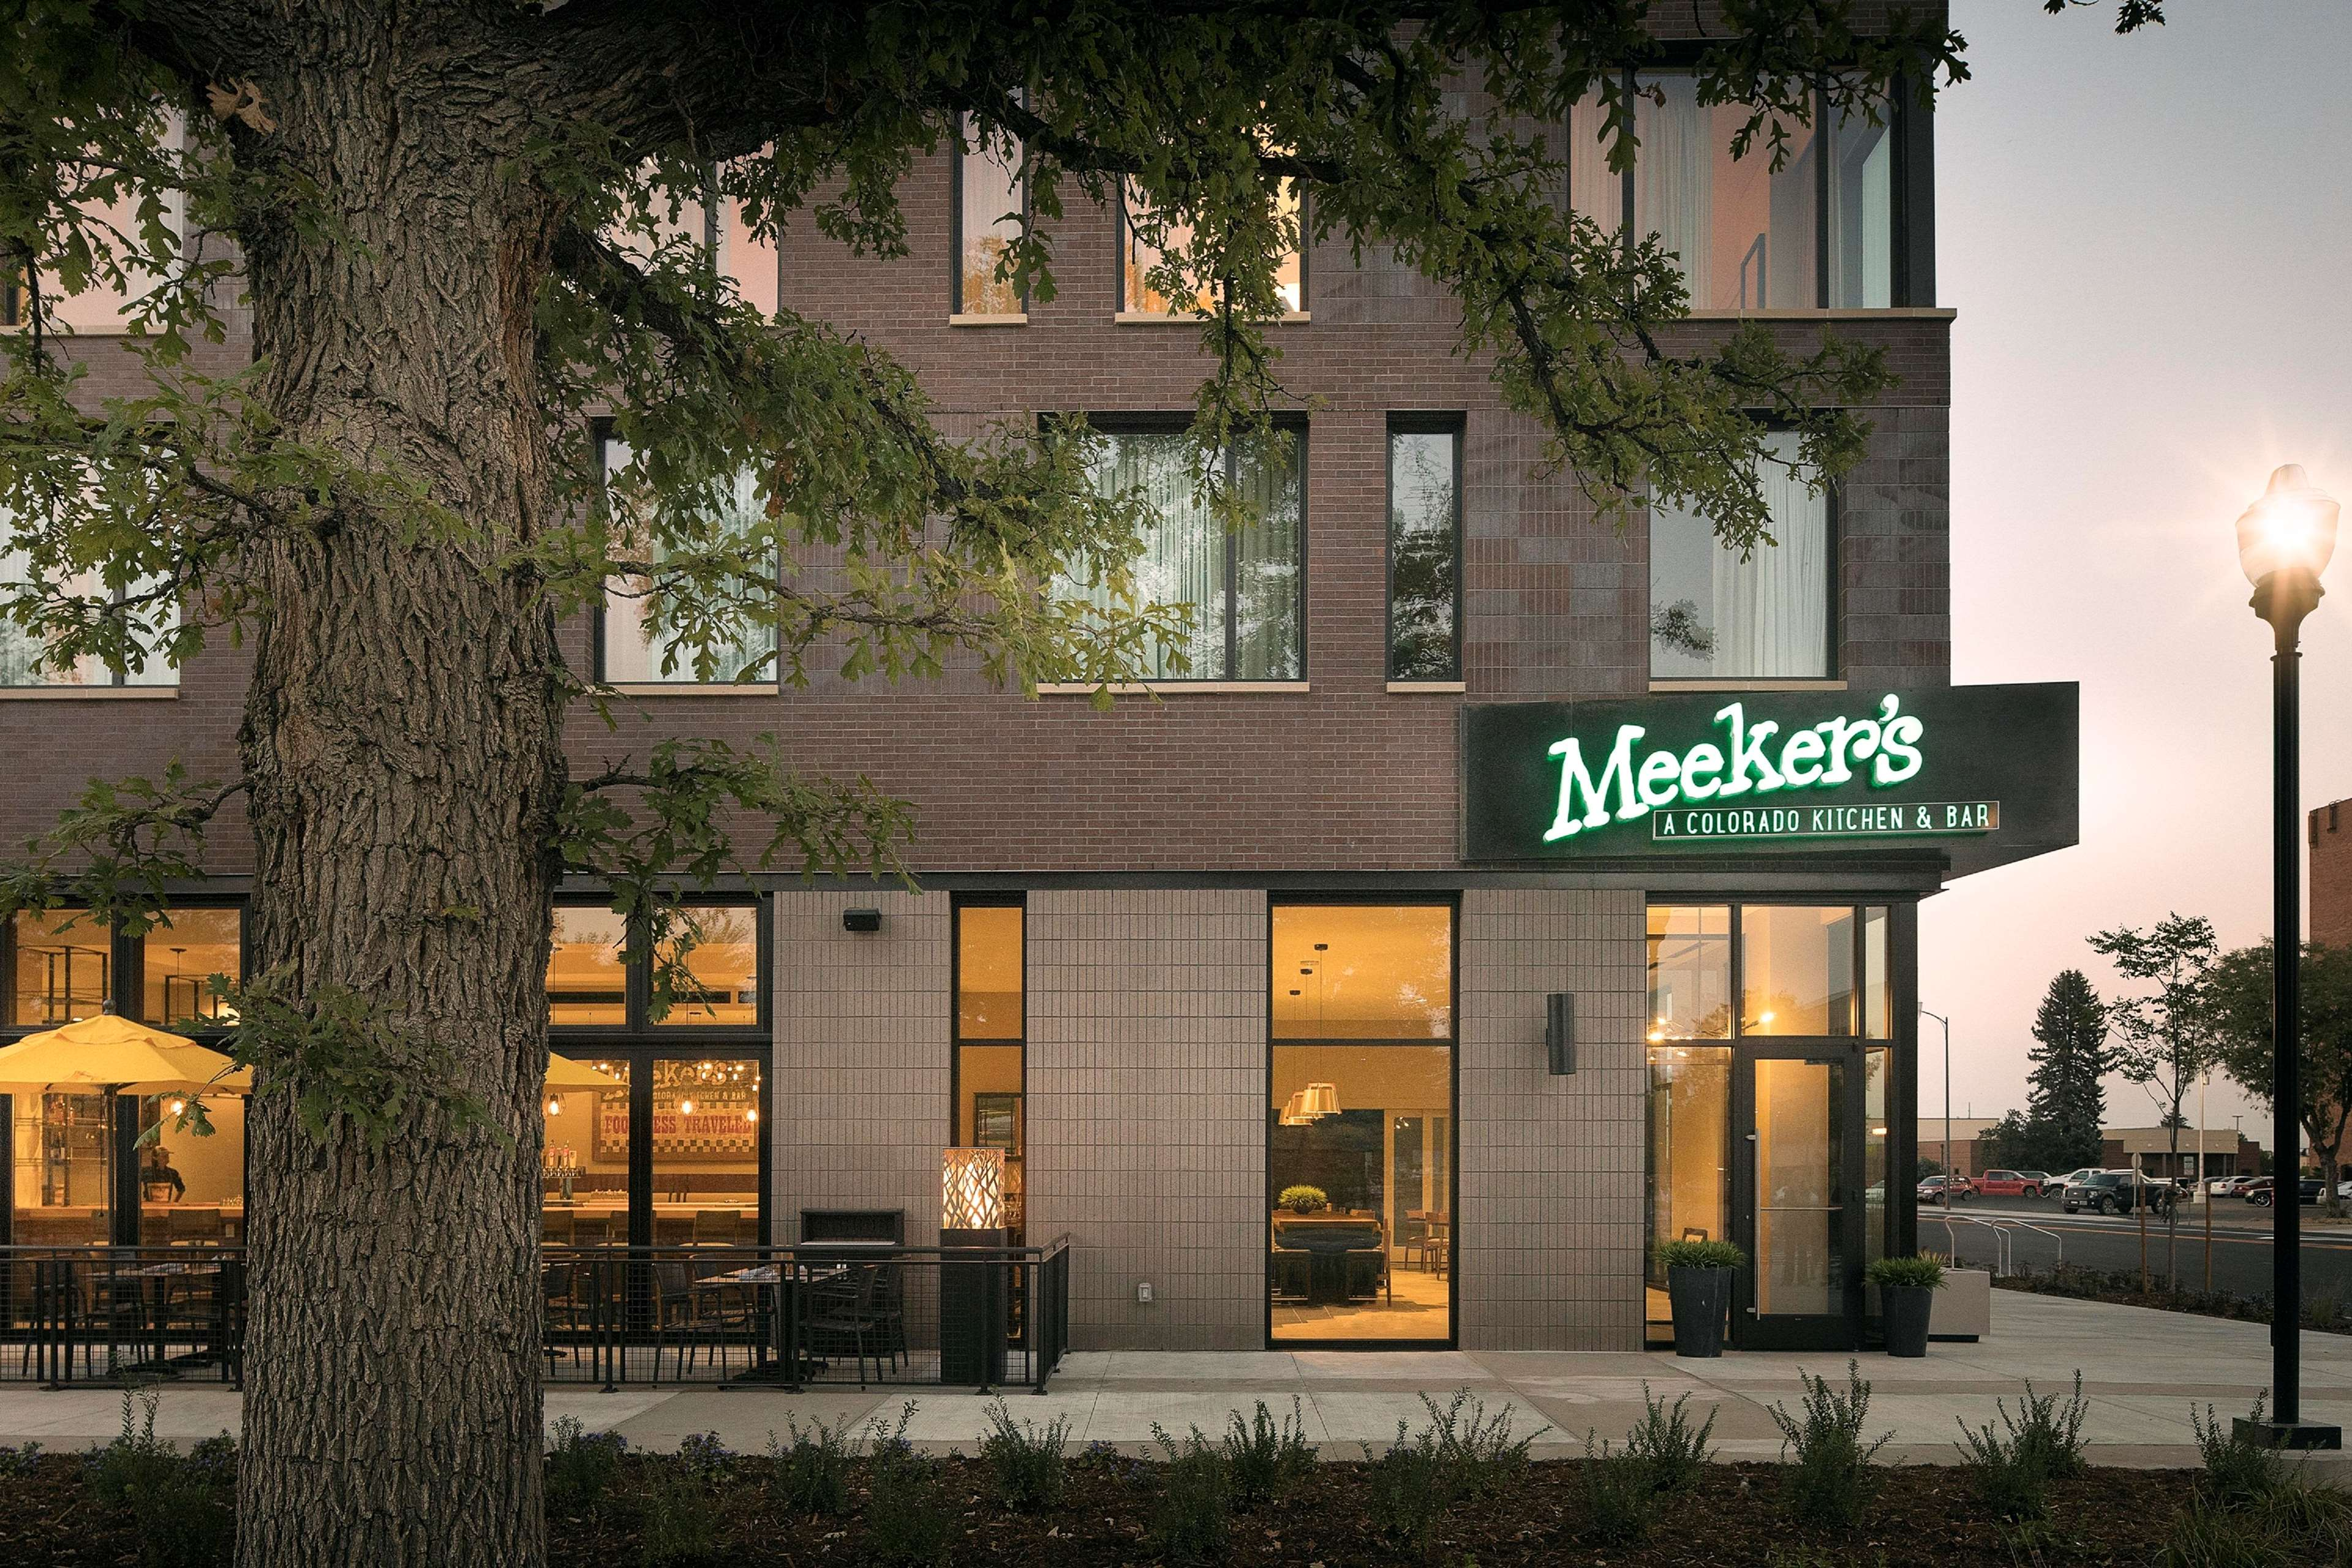 DoubleTree by Hilton Greeley at Lincoln Park image 15